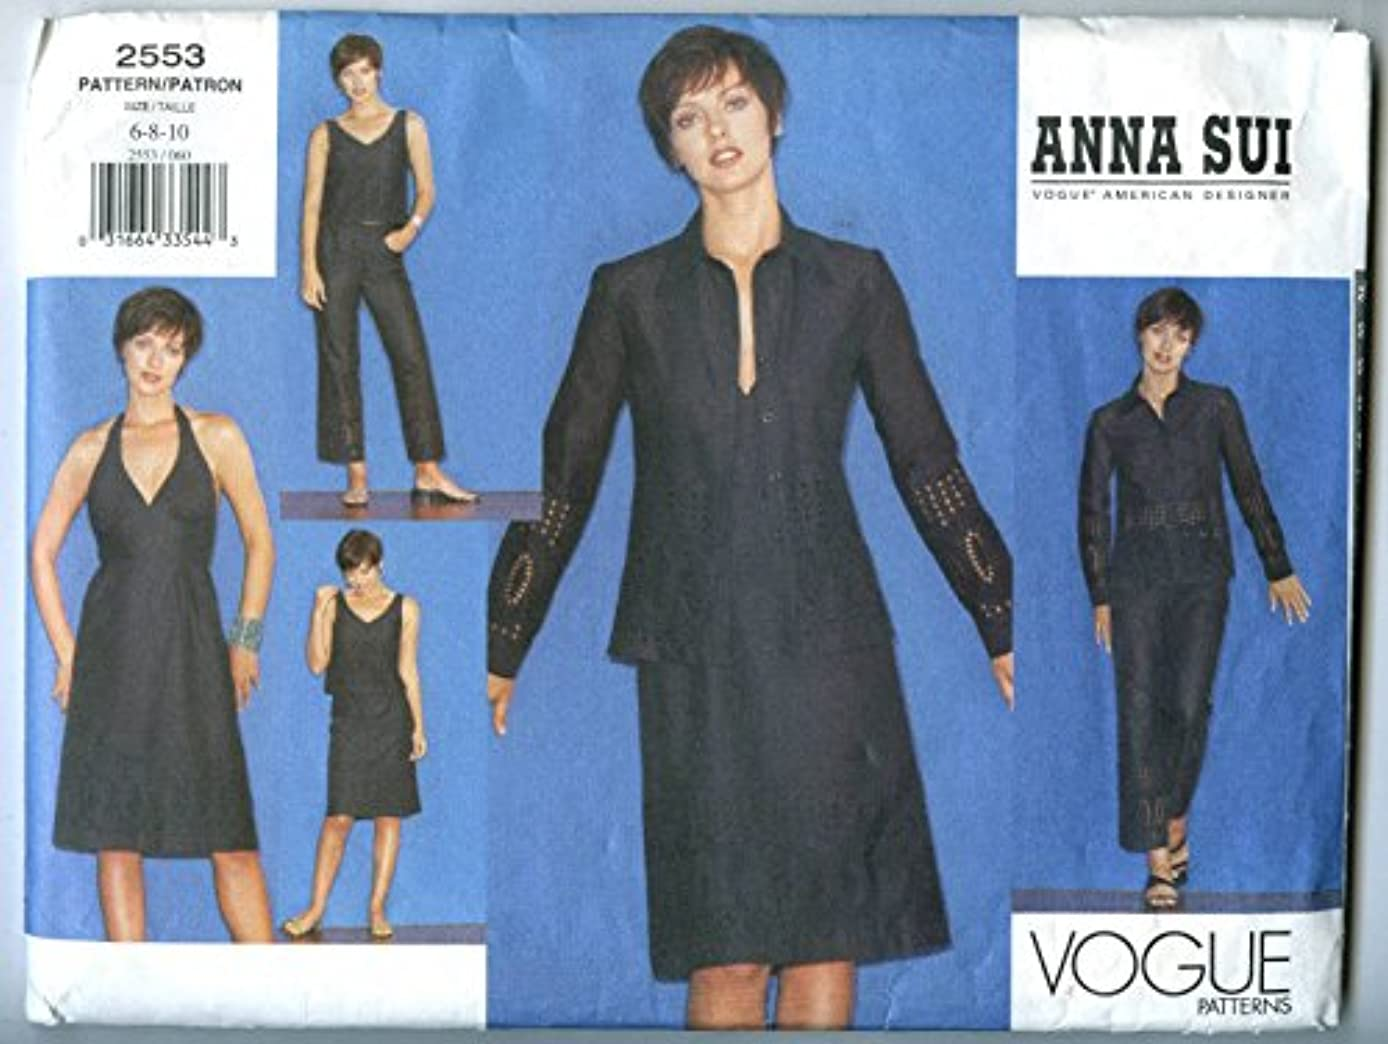 Vogue Anna Sui 2553 Misses Jacket Dress Top Skirt & Pants Pattern (Size 6-8-10)